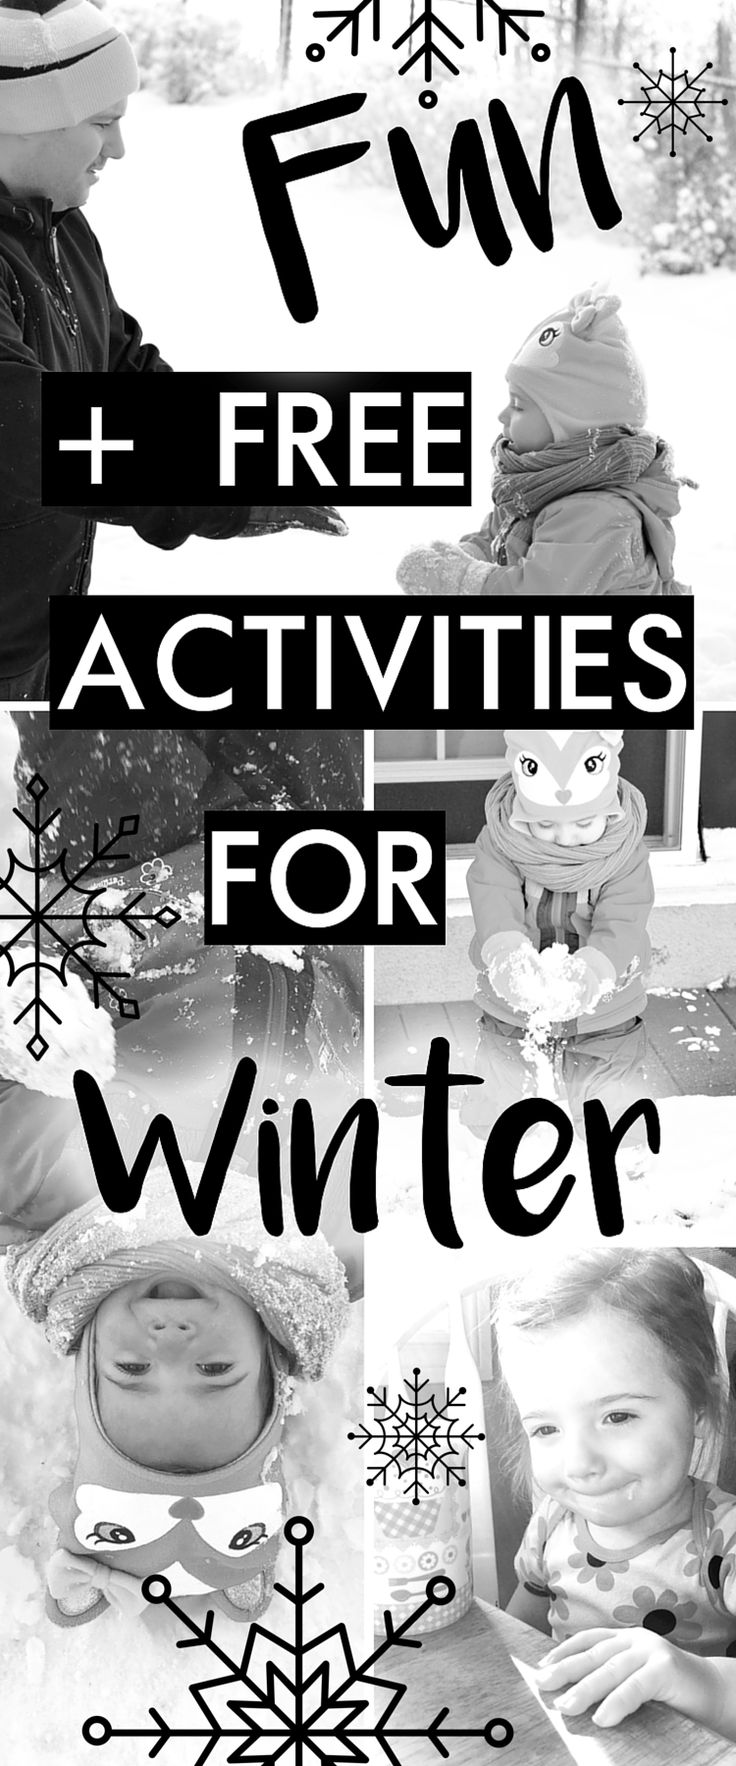 best images about kids fun learning on pinterest